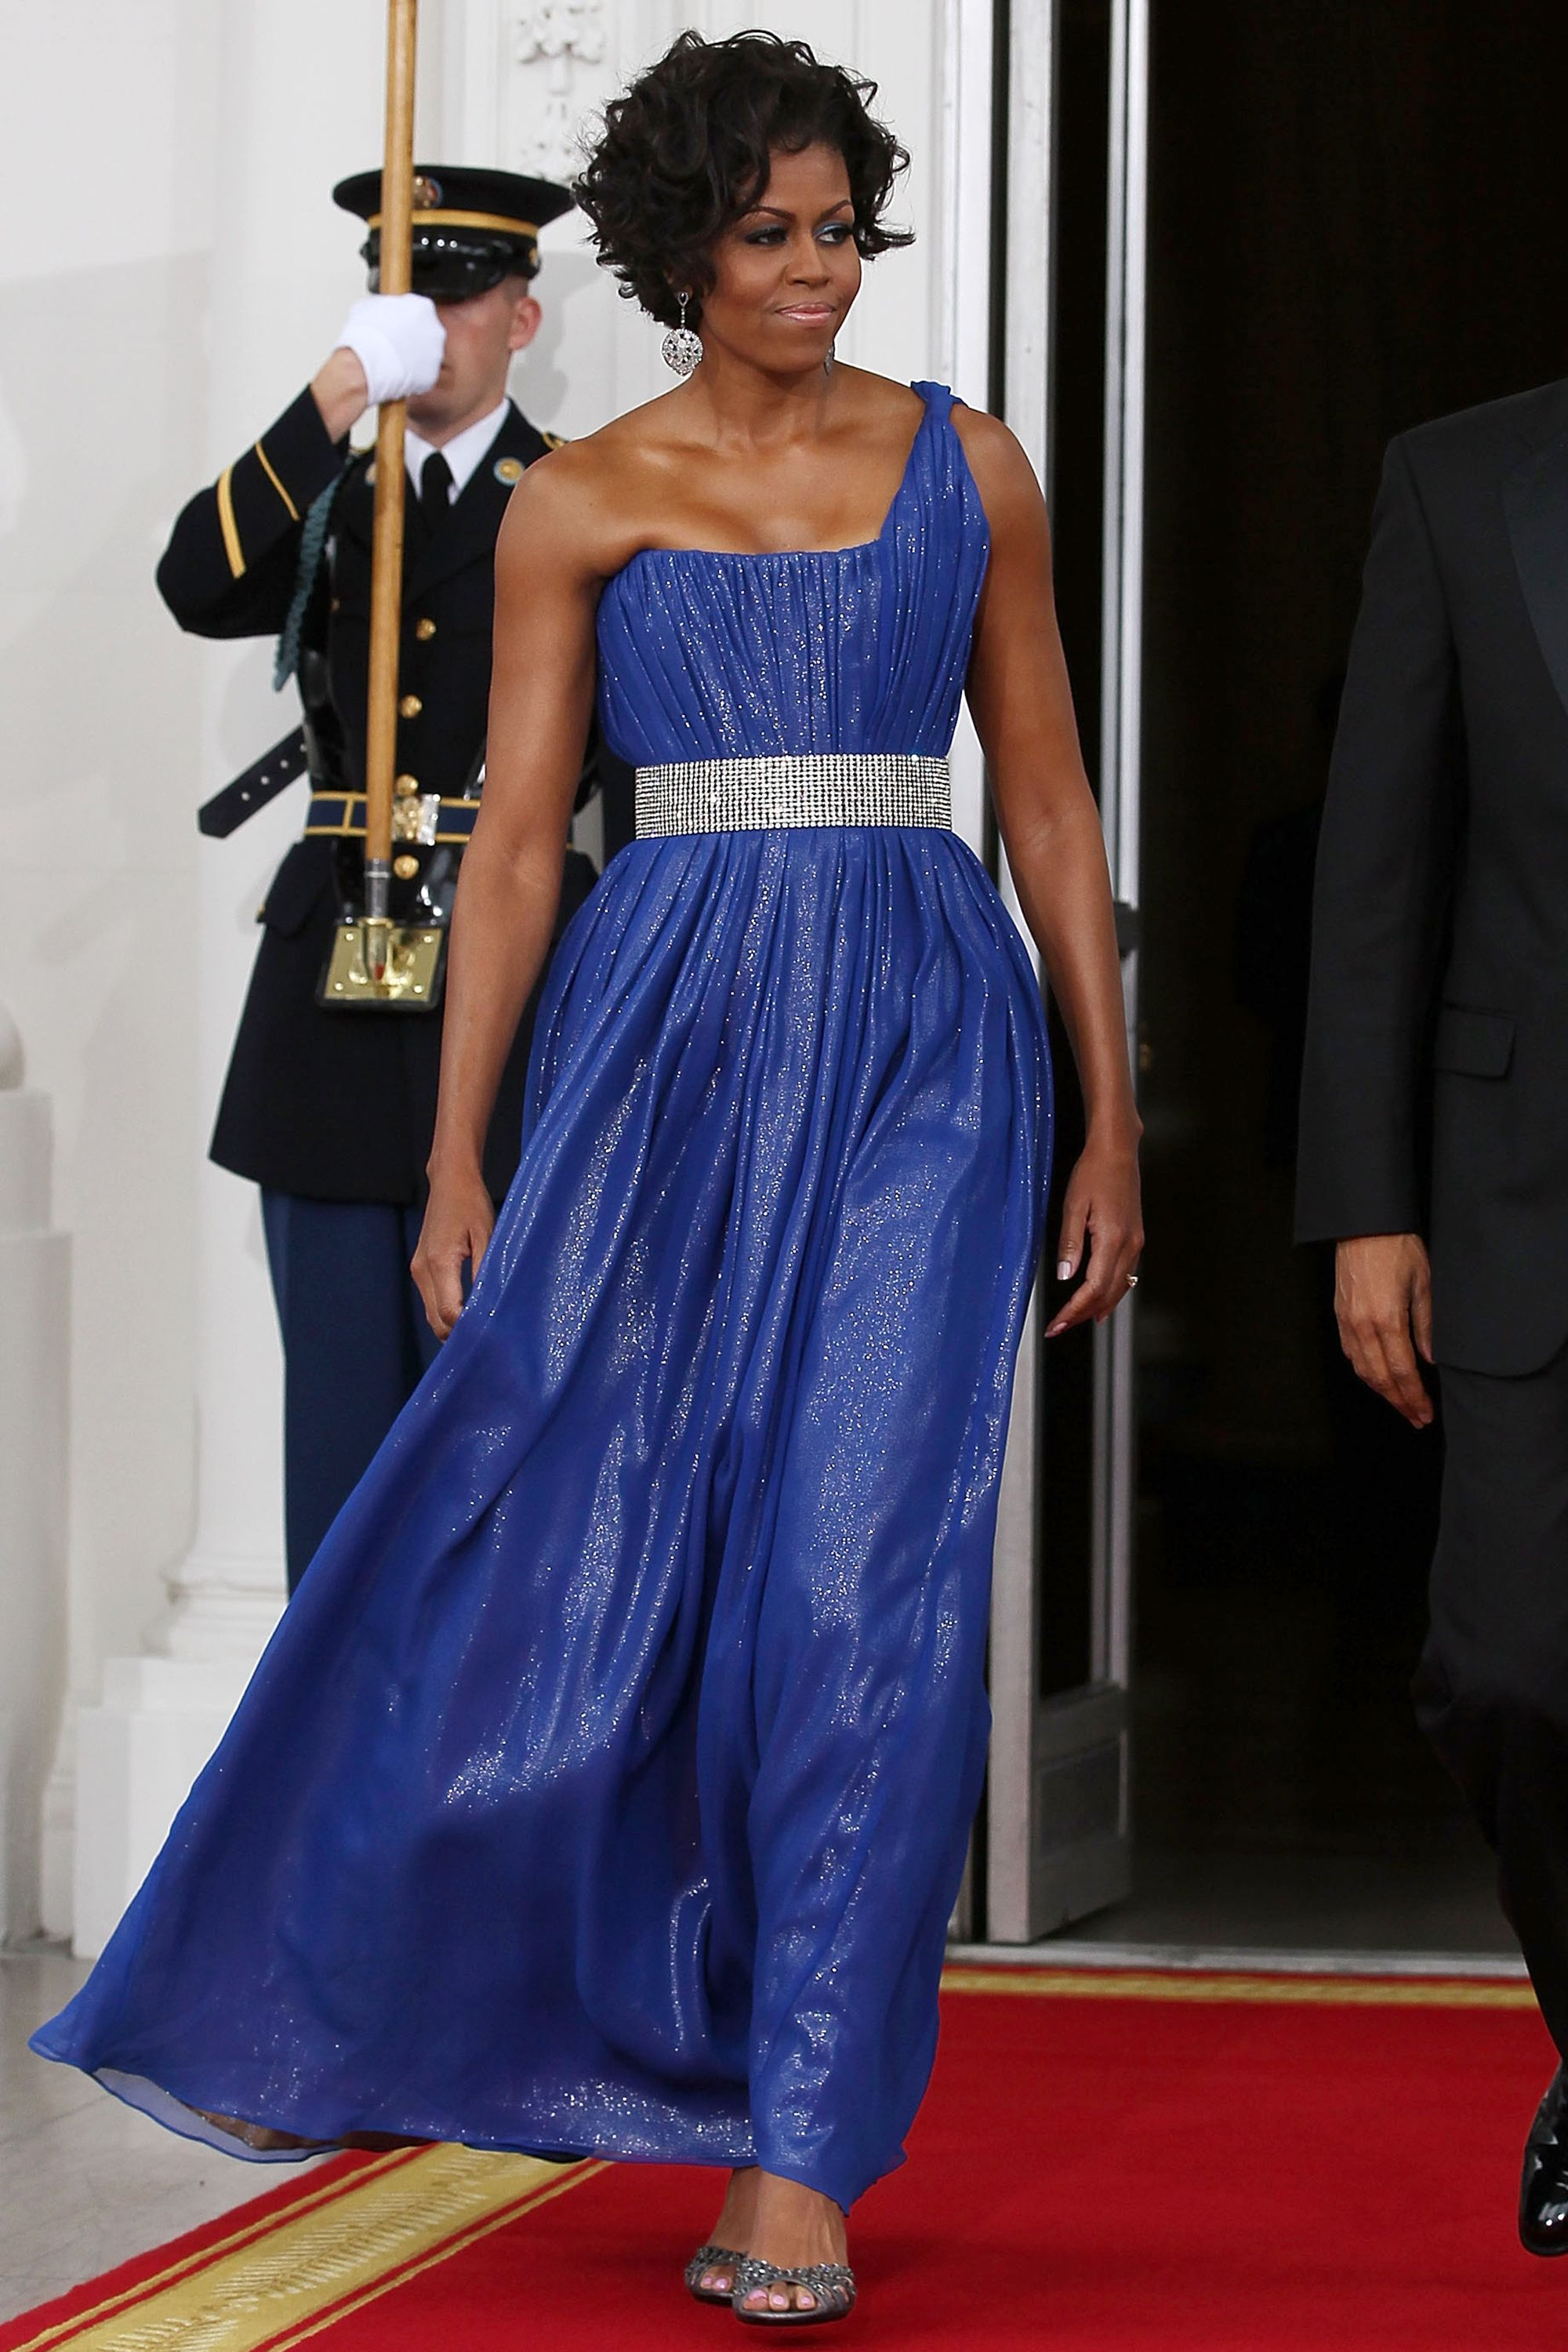 Michelle Obama's 45 Best Formal Dresses and Gowns